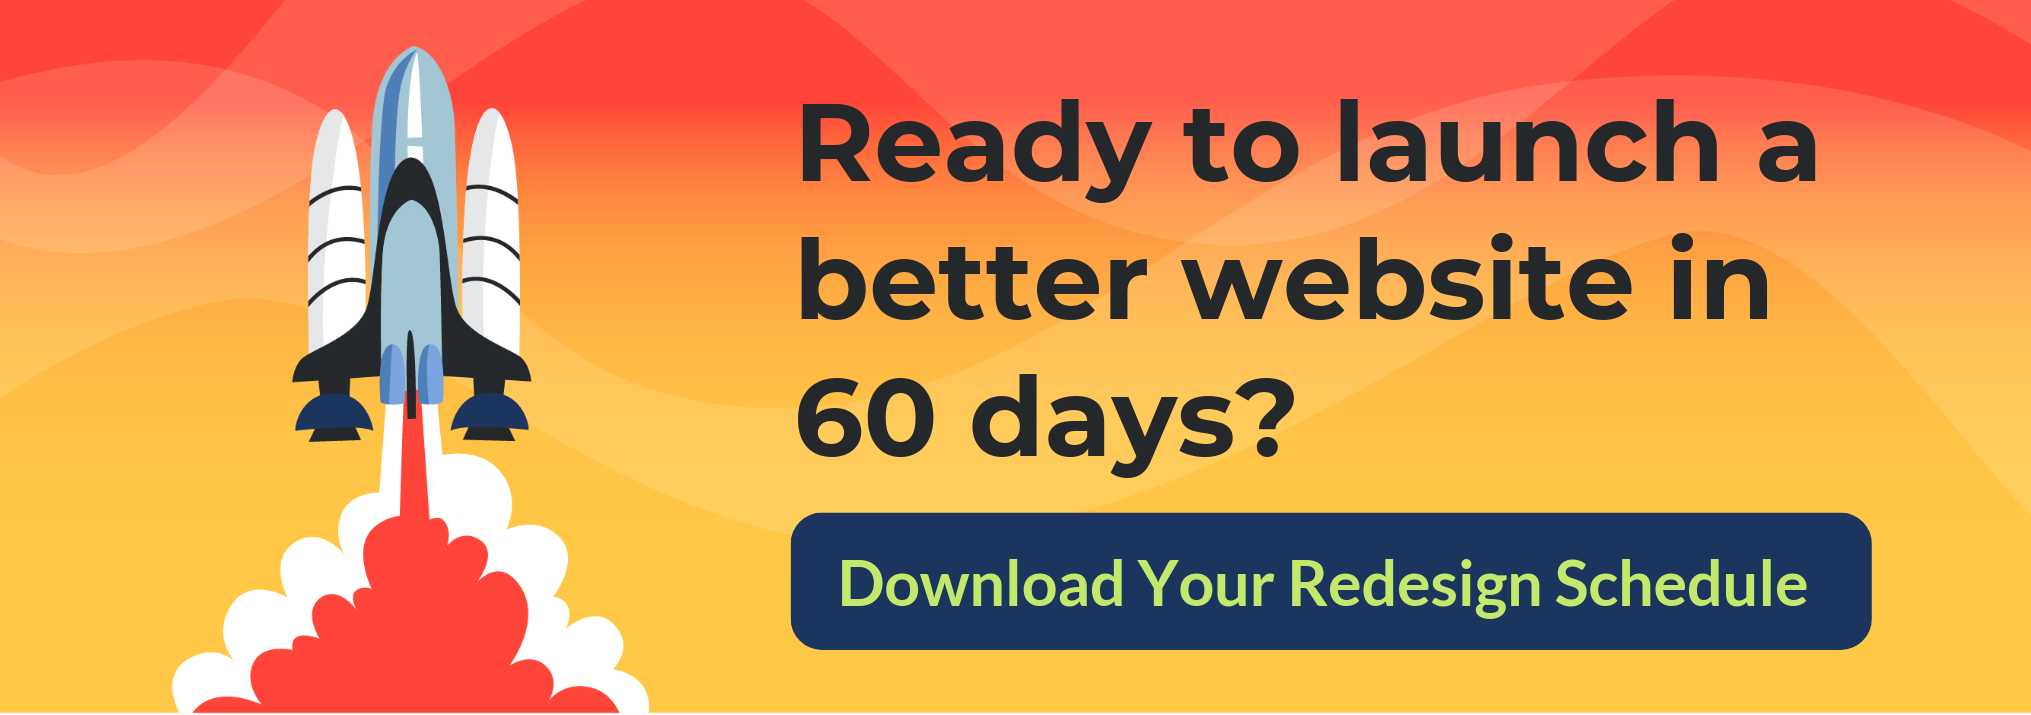 Ready to launch a better website in 60 days?